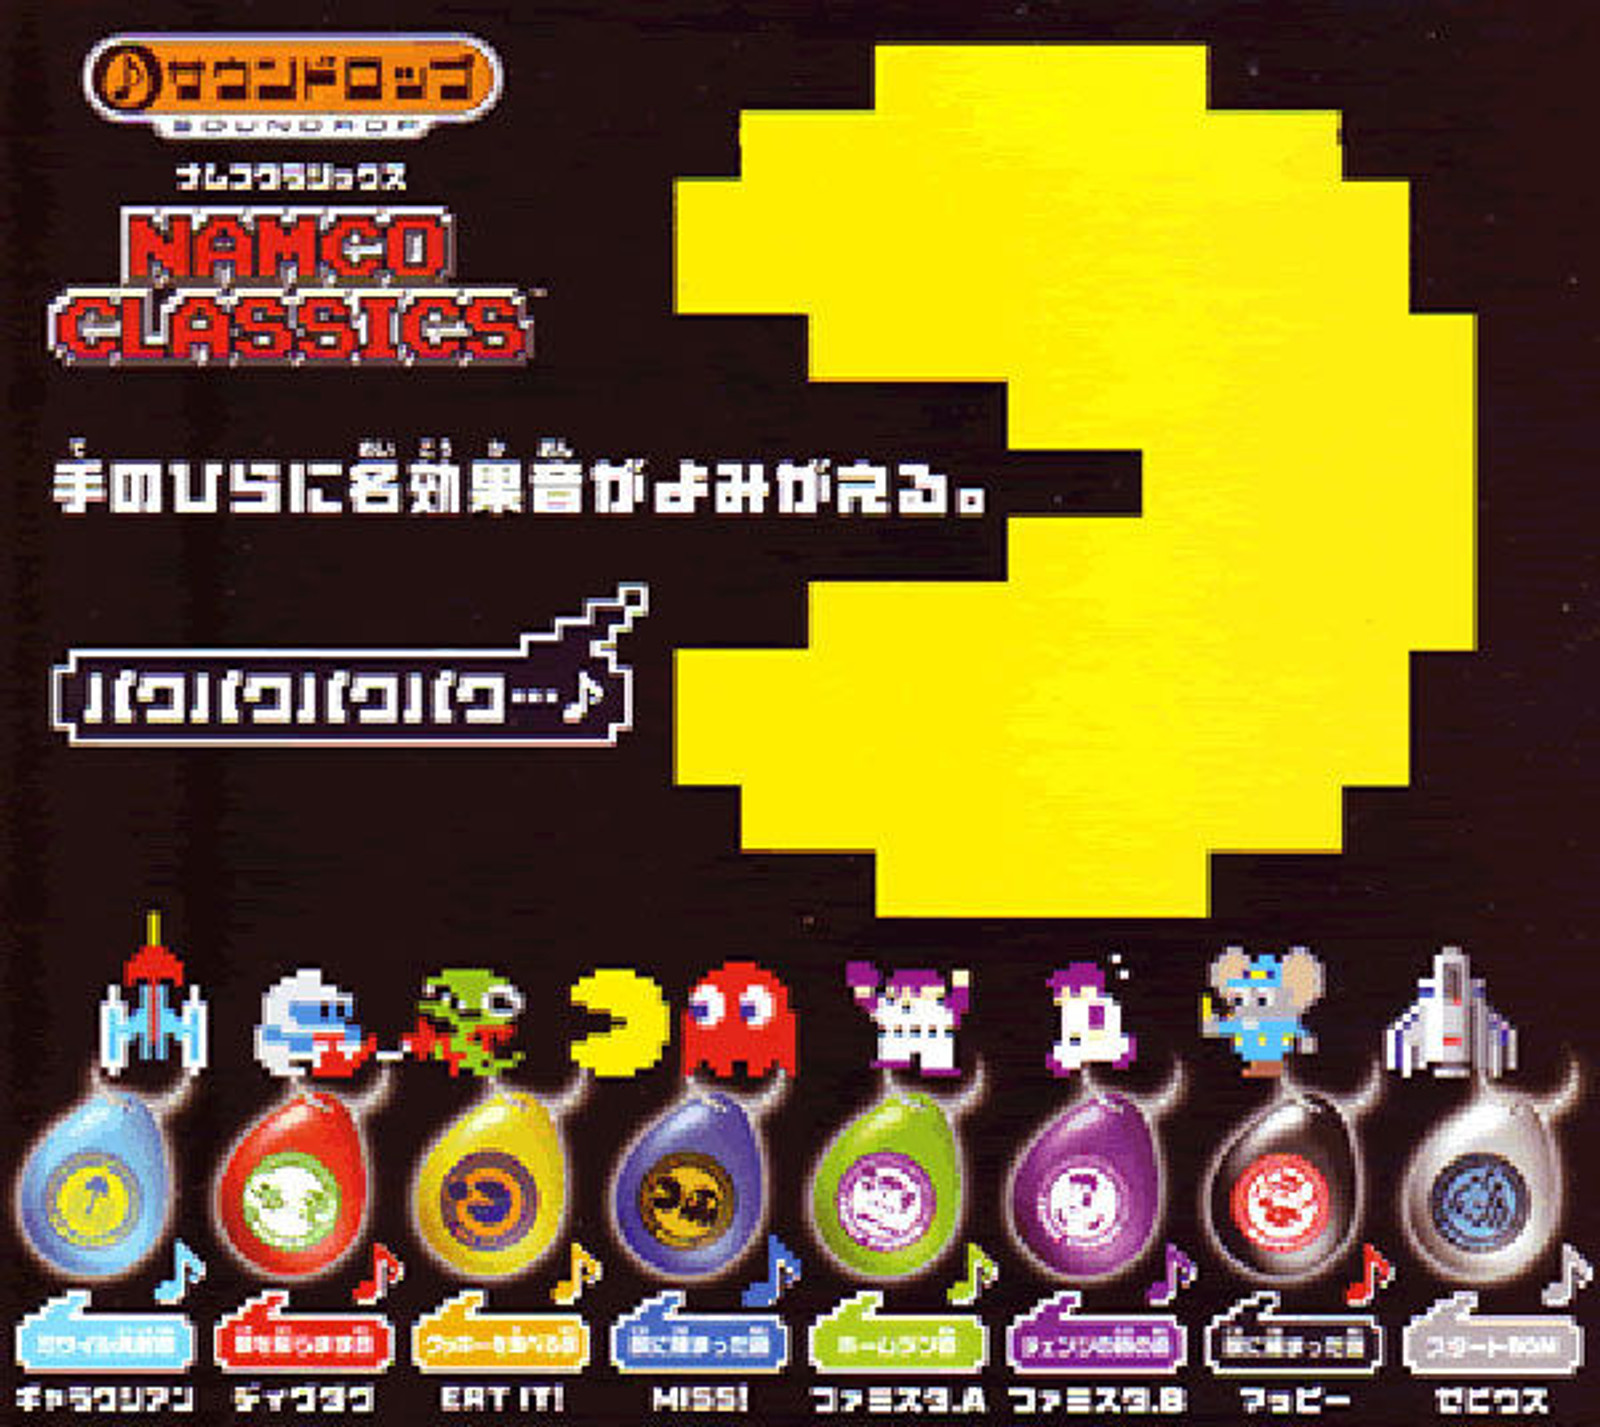 Complete set of Namco Classics Soundrop Ball Chain Bandai JAPAN GAME